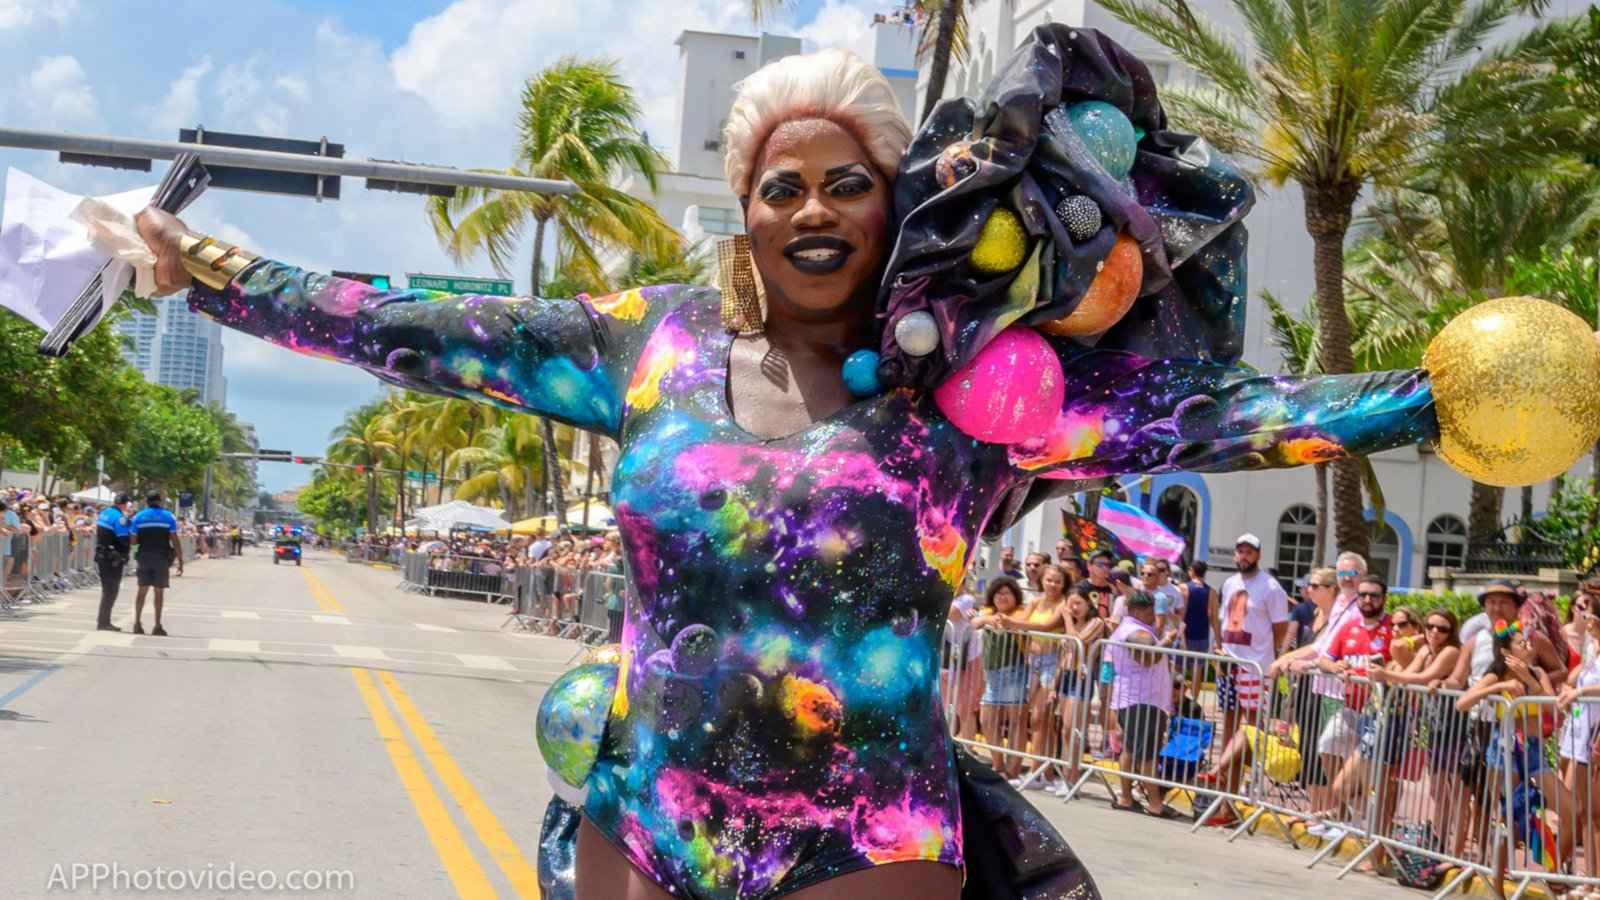 If you're in Miami during Pride then you have to experience the incredible pride parade and all the colourful entrants!